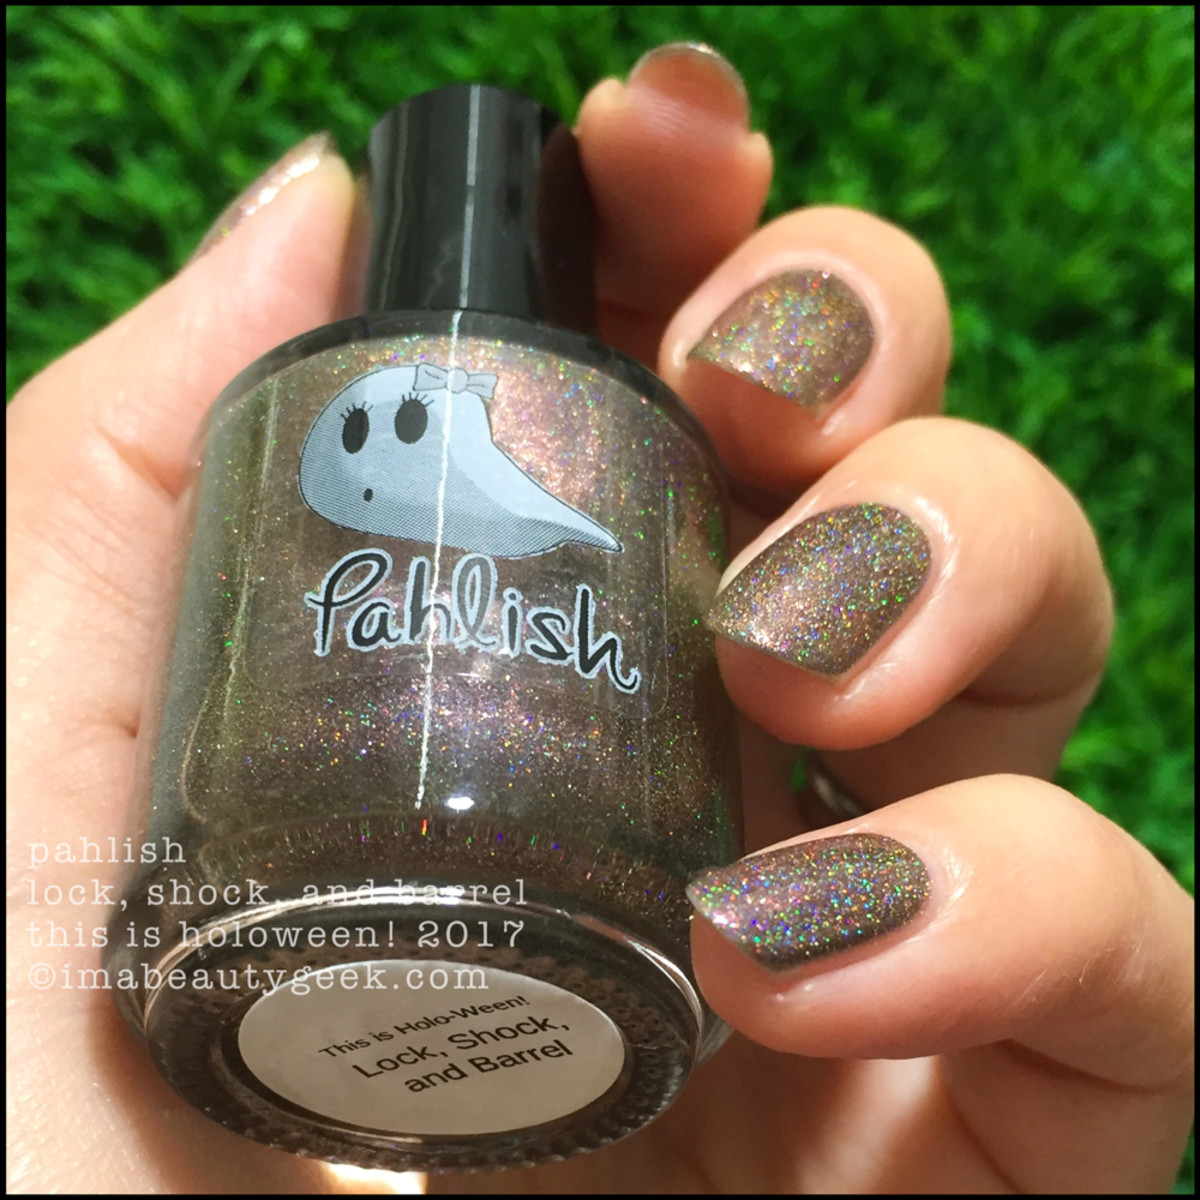 Pahlish Lock, Shock, and Barrel 2 - This is Holo-ween! 2017